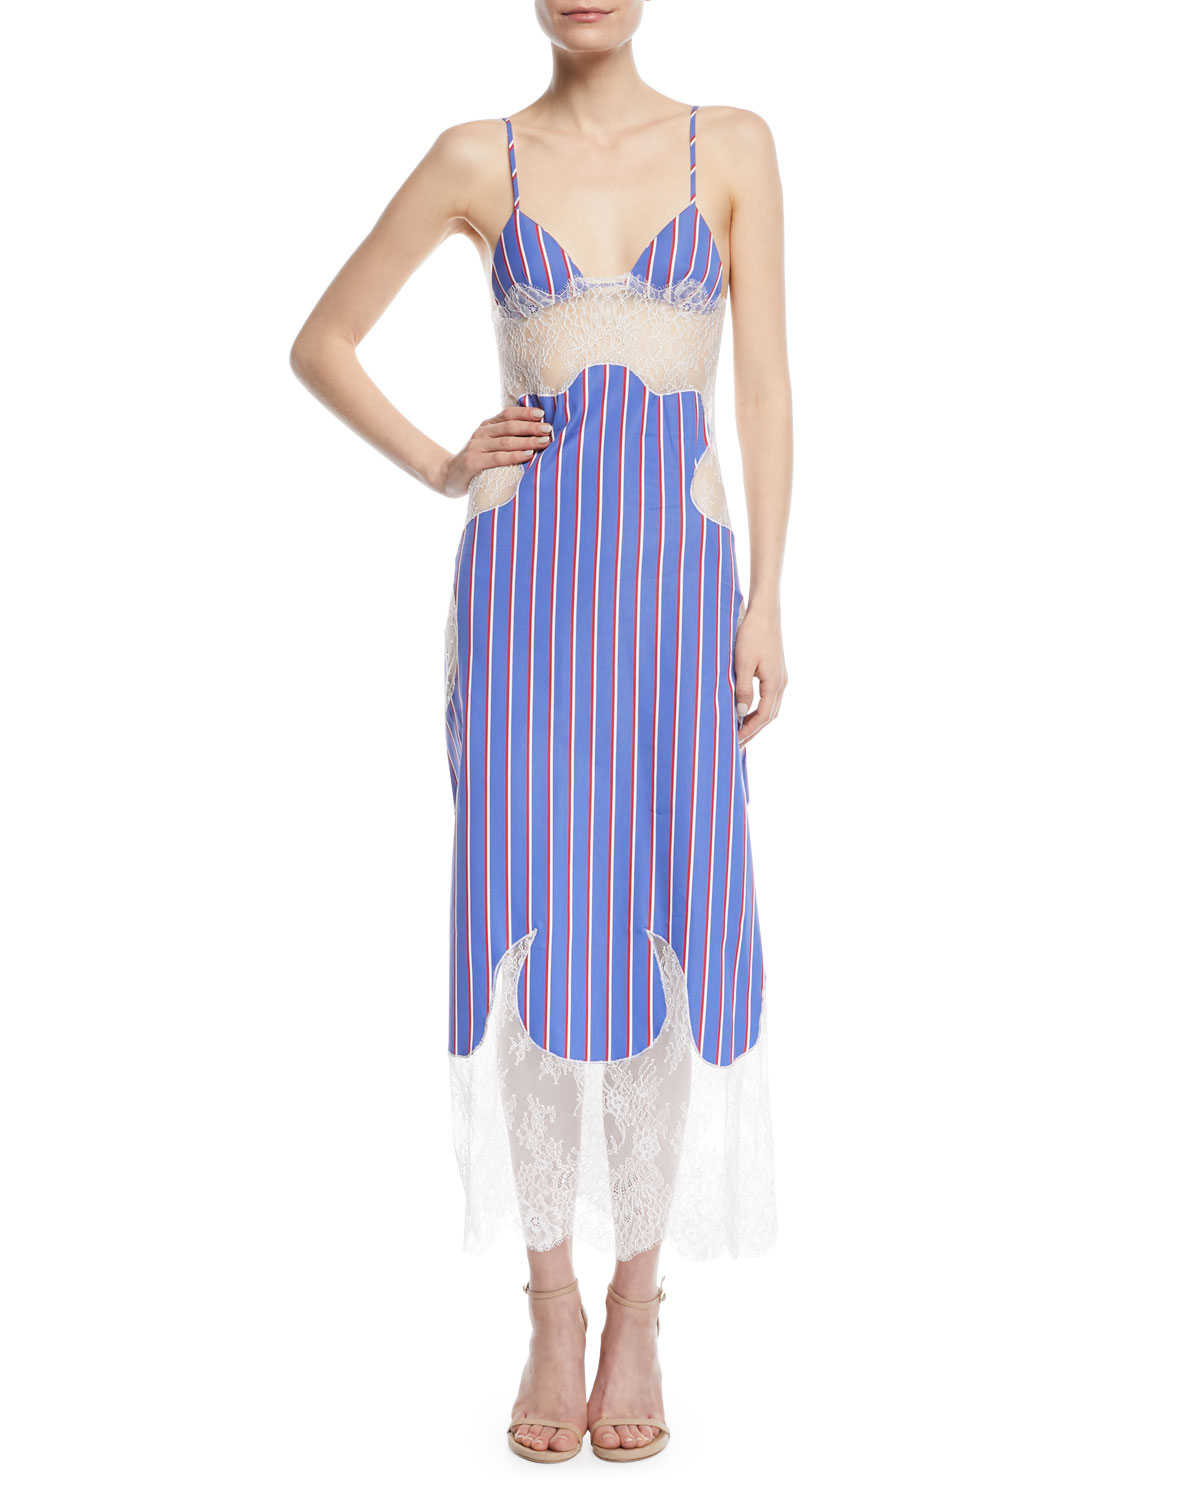 Striped Cotton and Lace Slip Dress